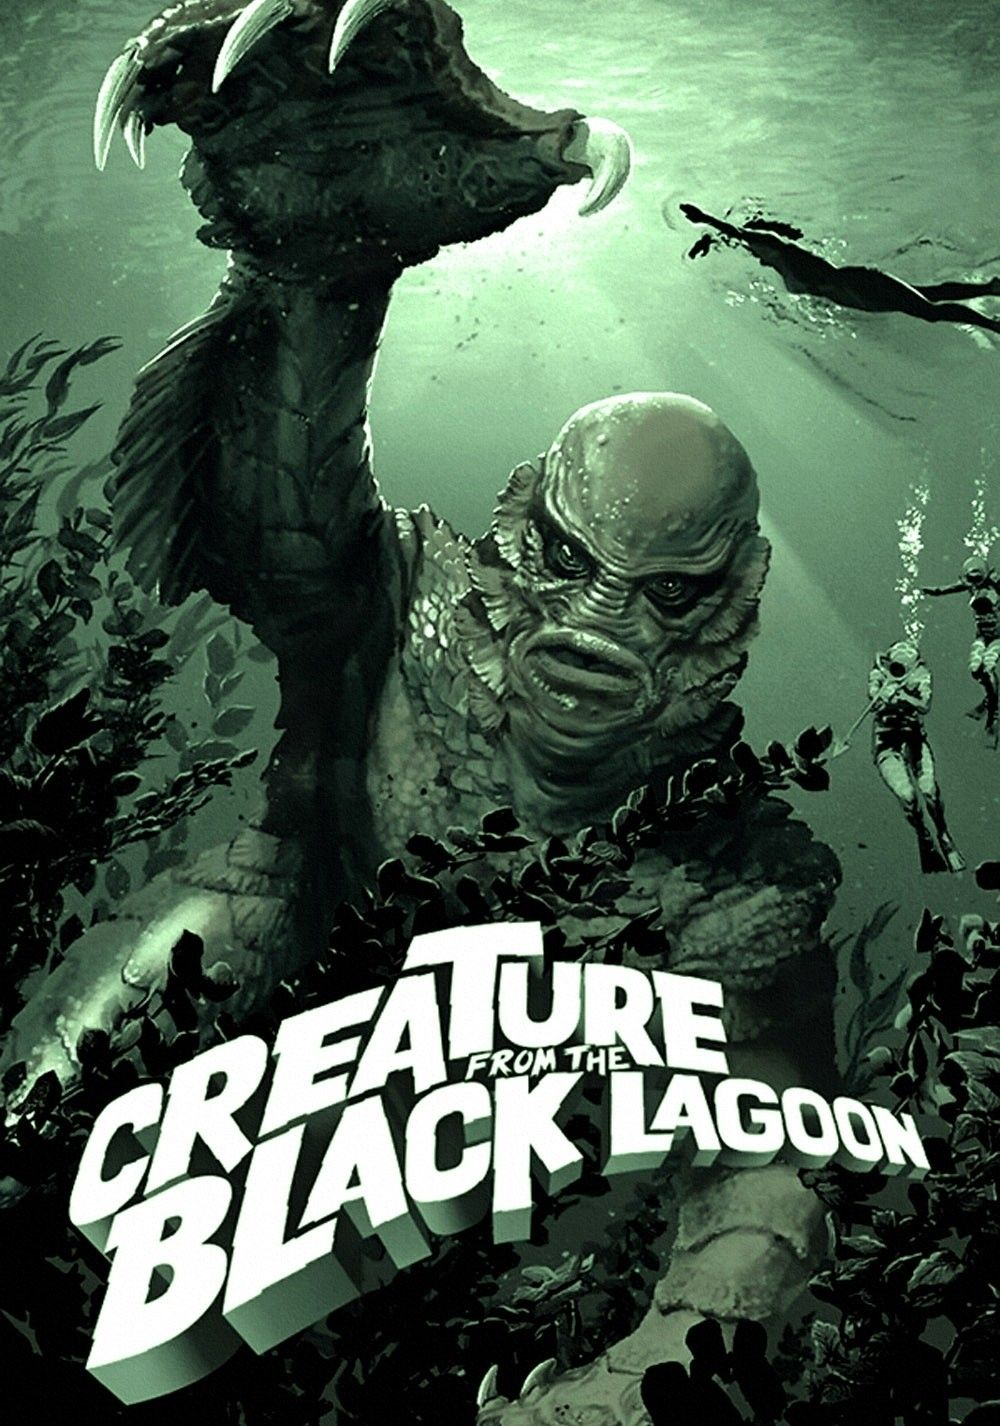 Pin by Daily Doses of Horror & Hallow on Creature from the